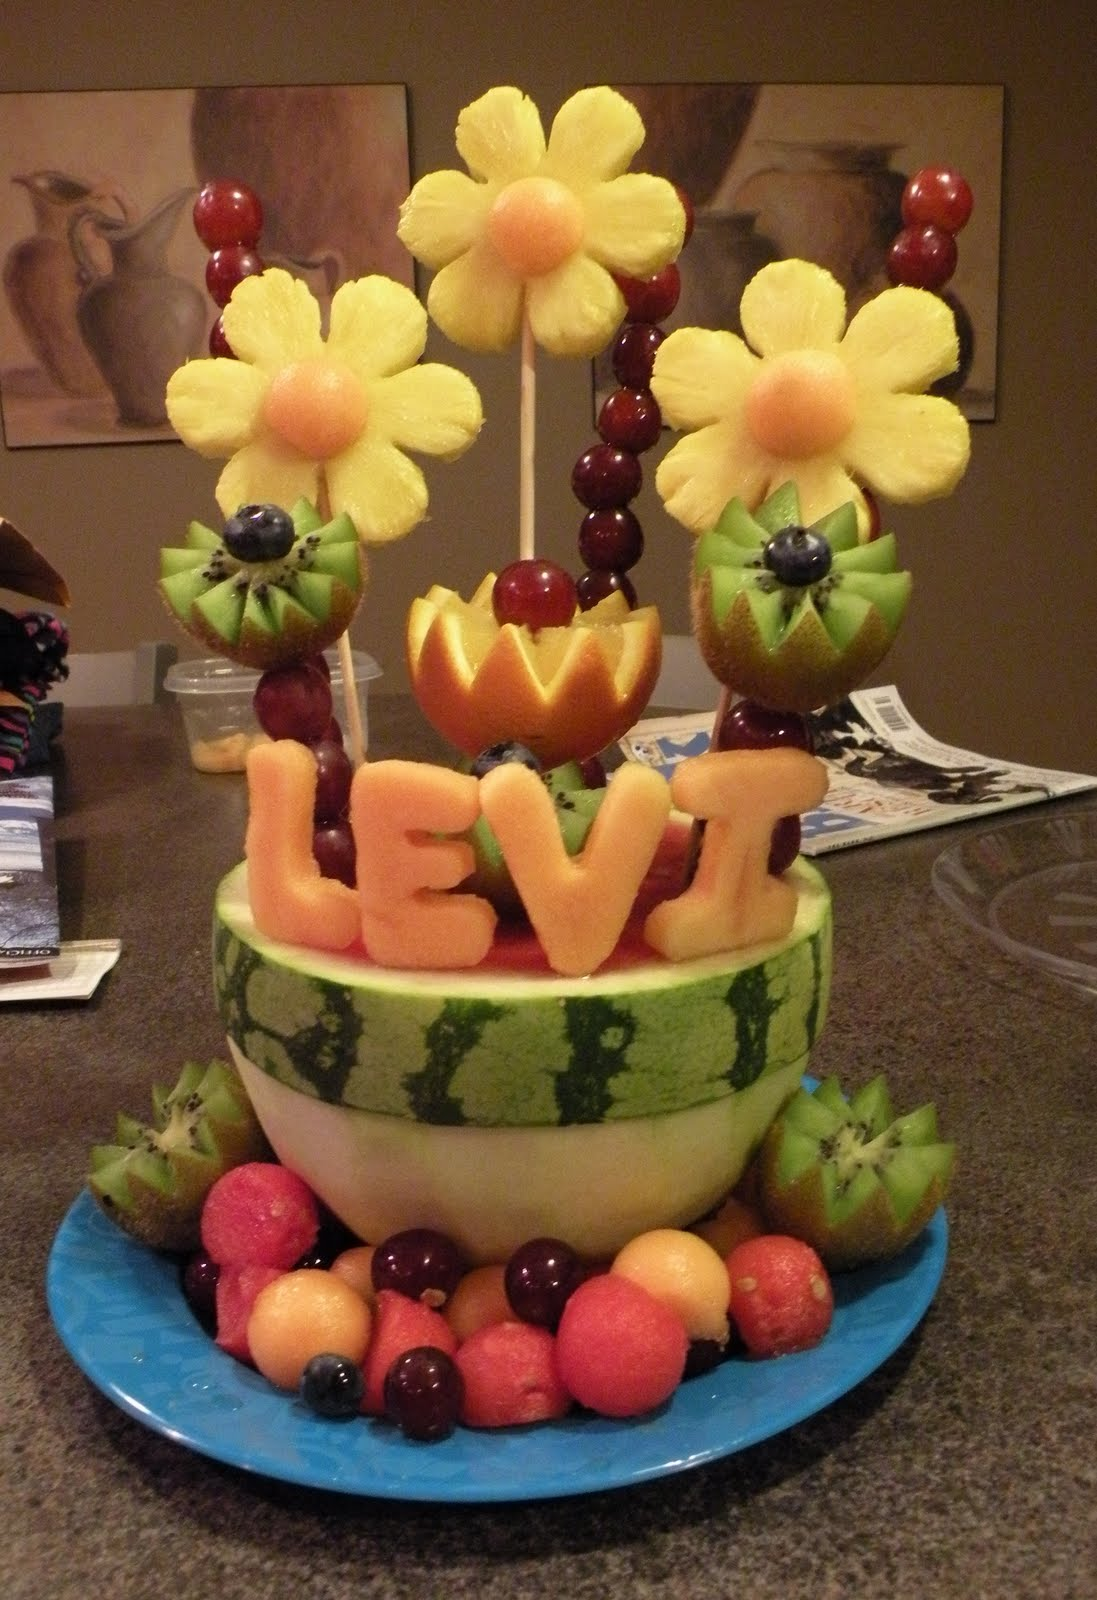 Baby Gift Edible Arrangements : The fruity flower girl fruit arrangements and carvings